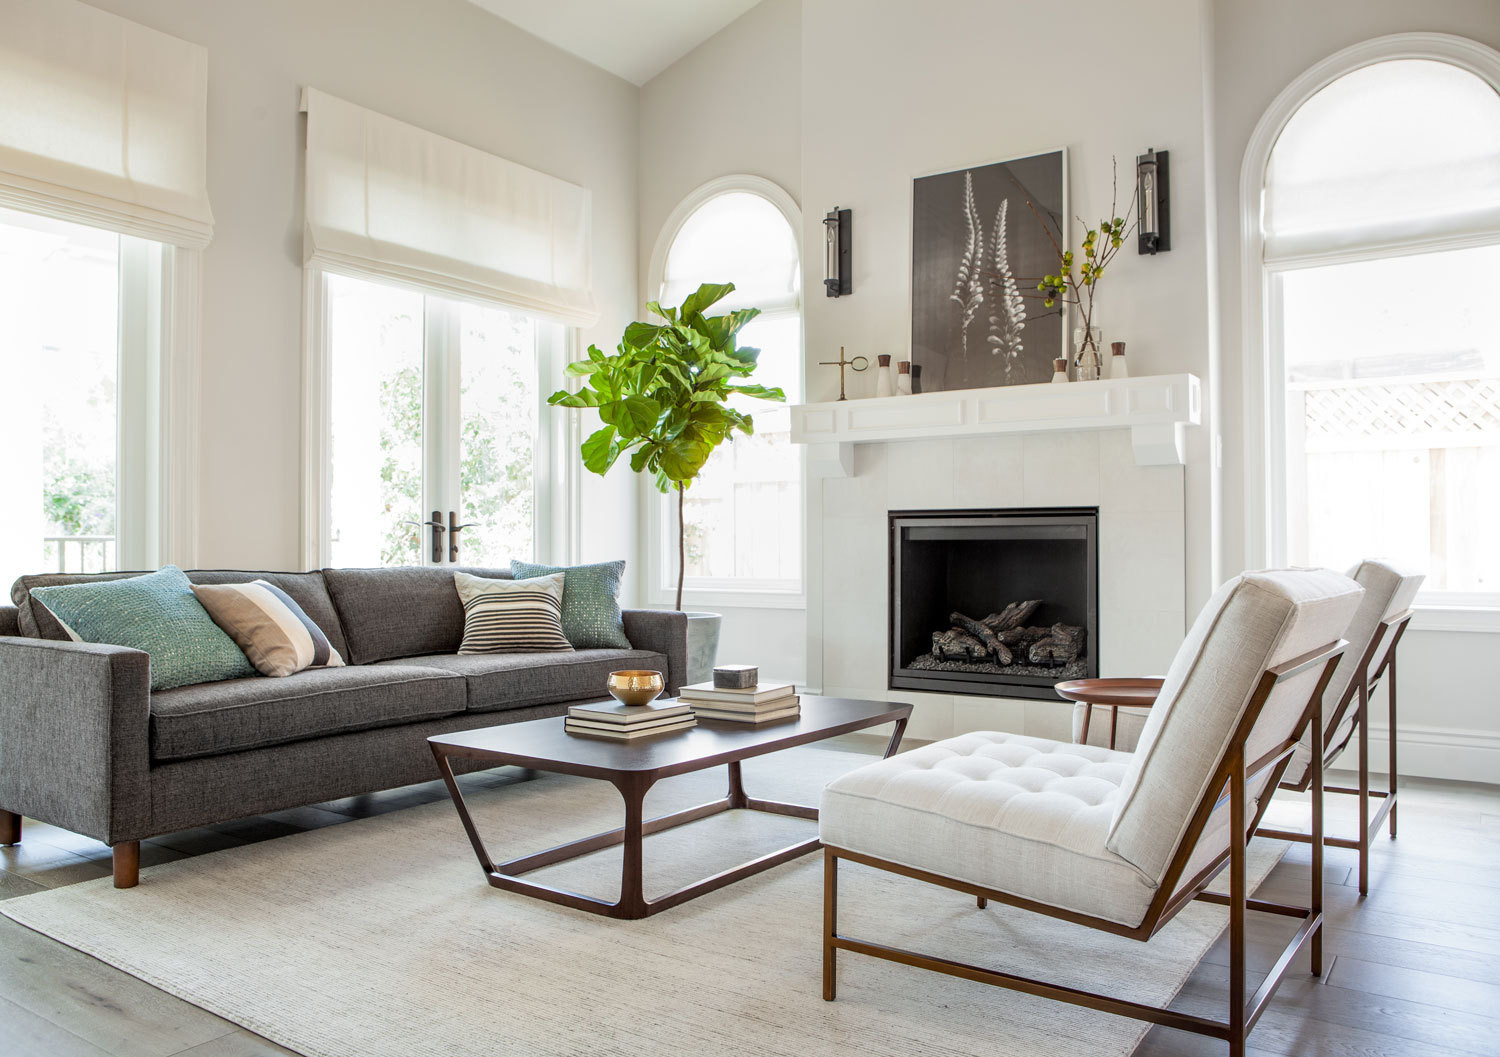 The living room that Jennifer Jones designed in Palo Alto, California, features sustainably minded products and a timeless, nature-inspired aesthetic.